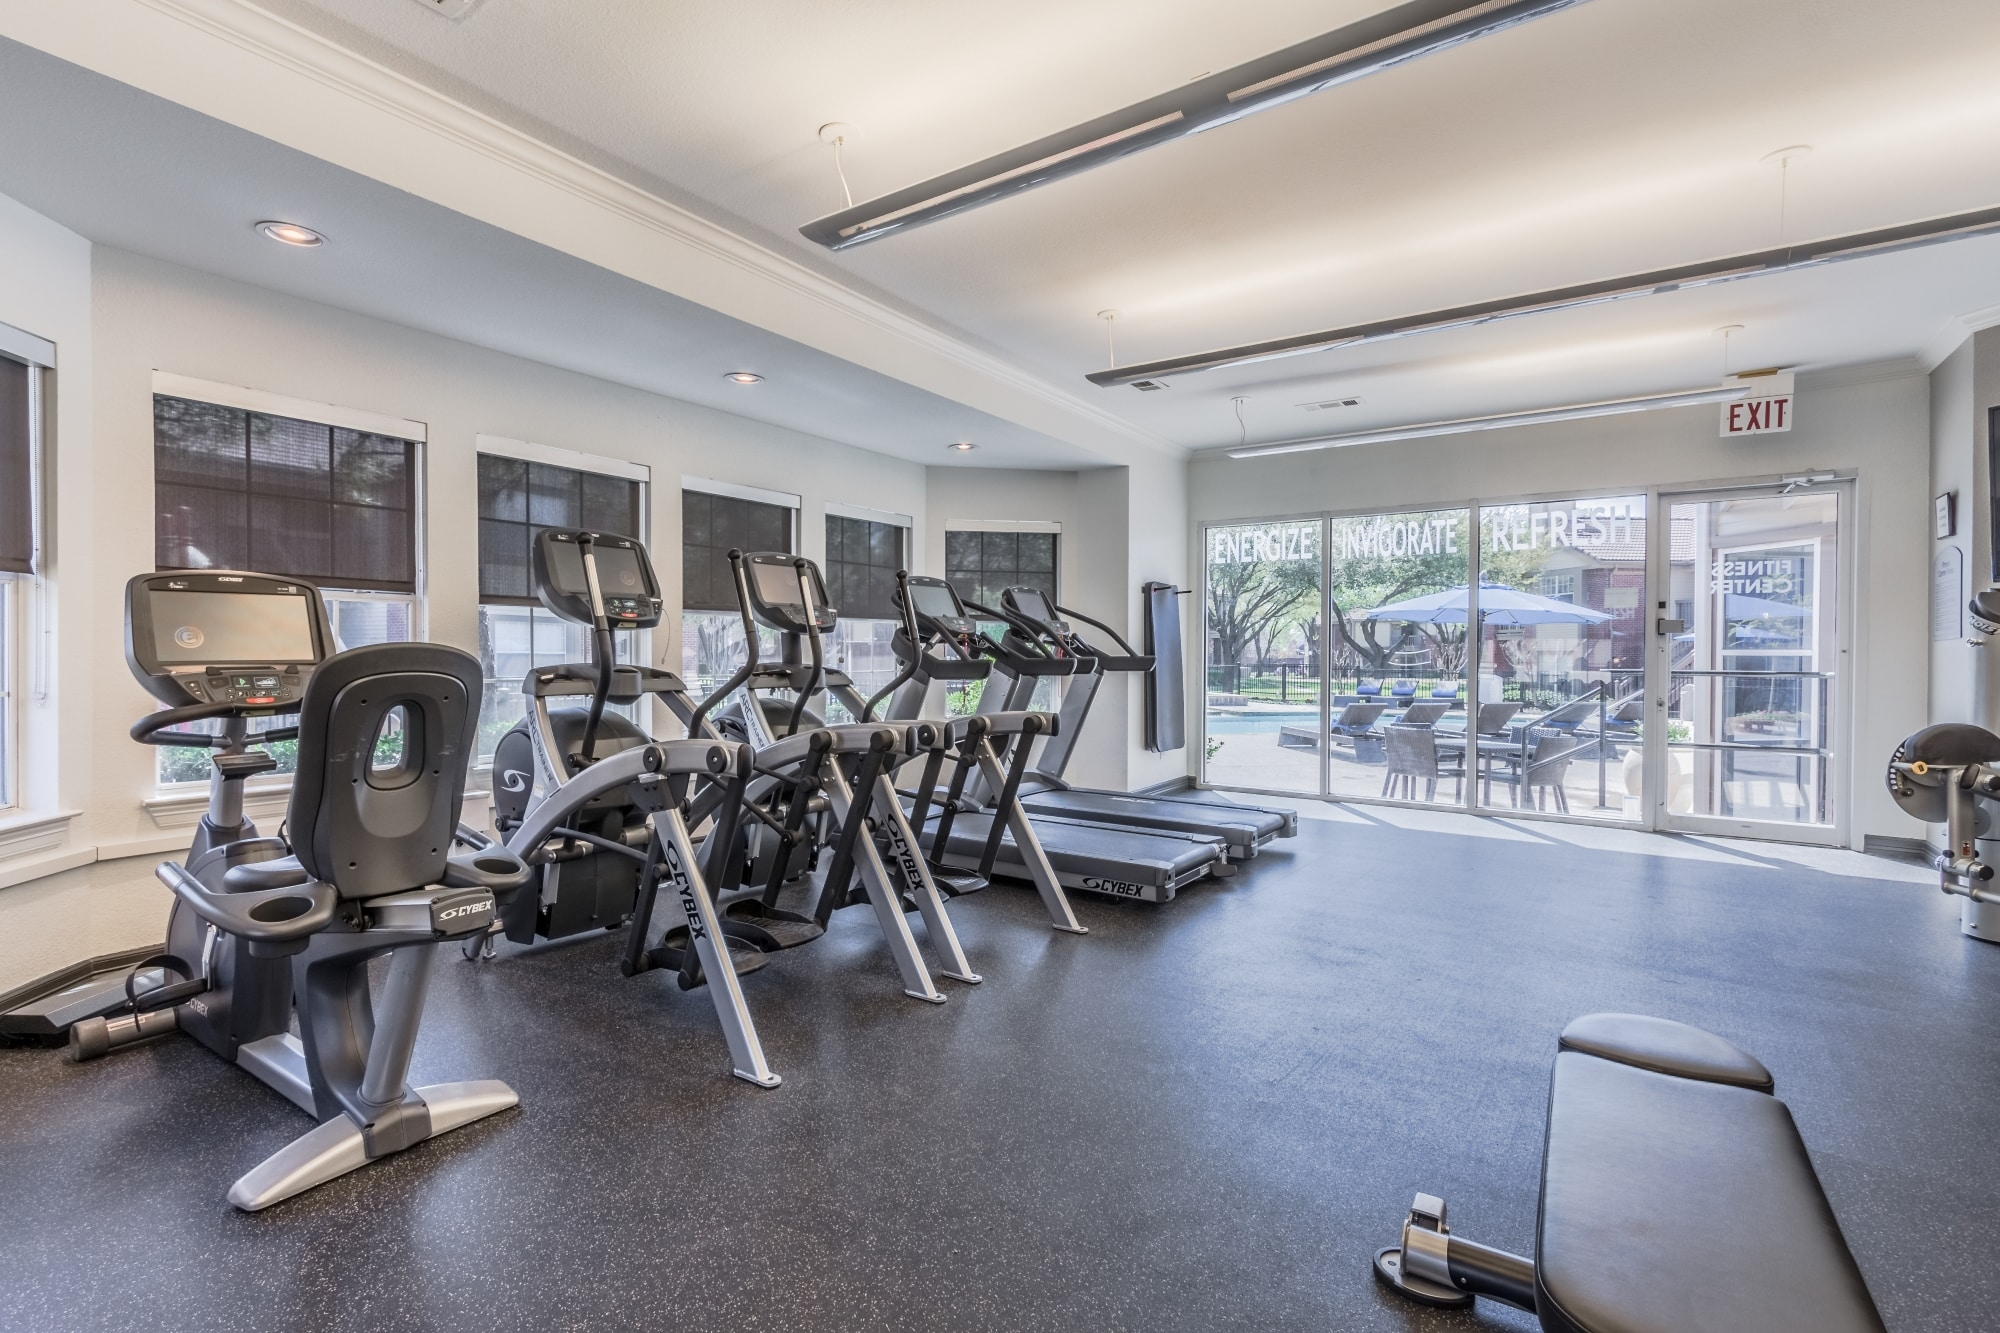 New Fitness Center with Club-Style Equipment